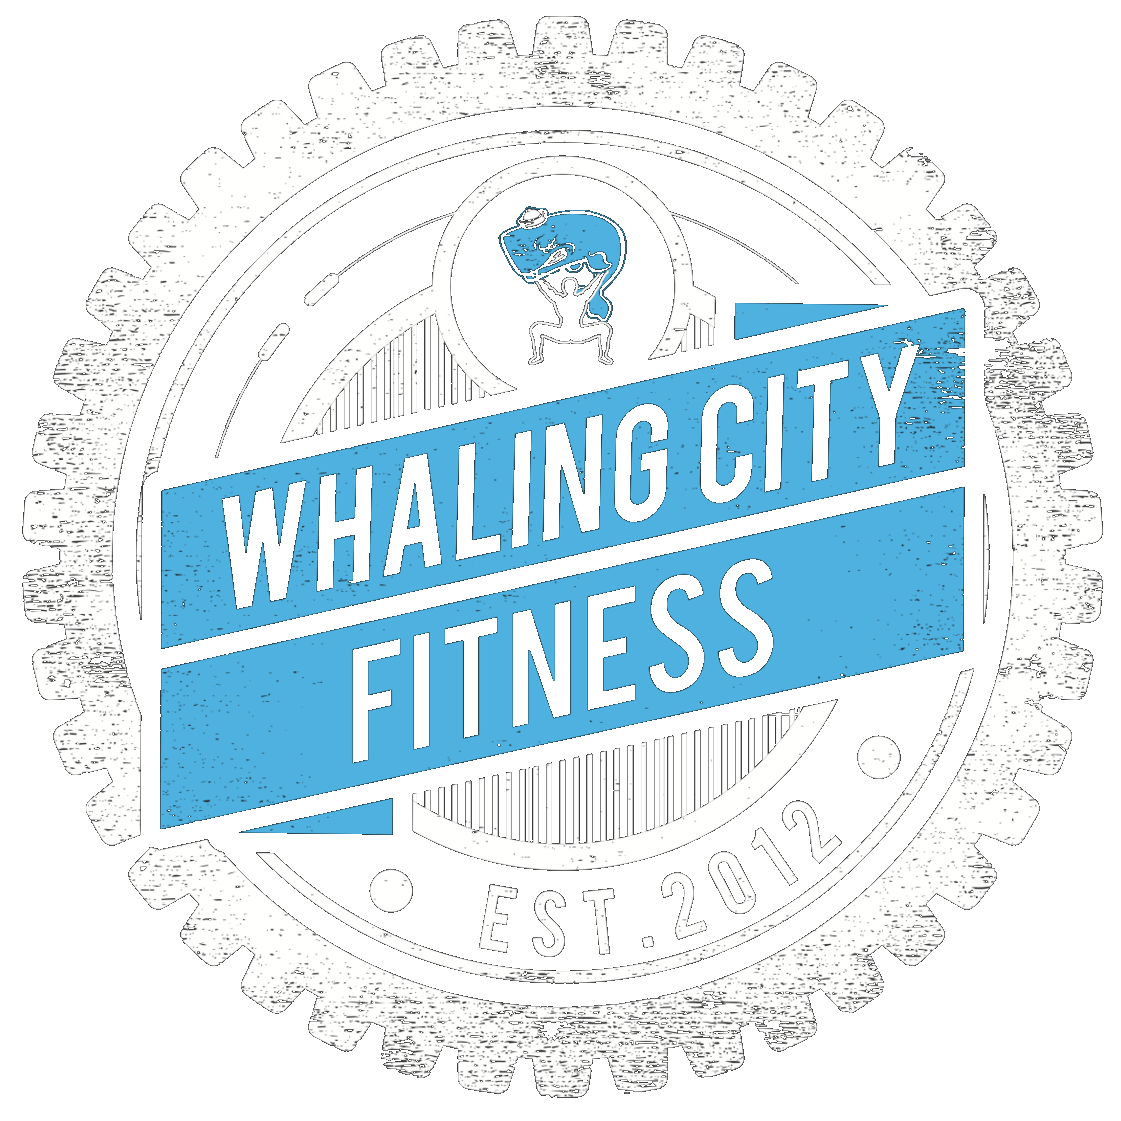 Whaling City Fitness